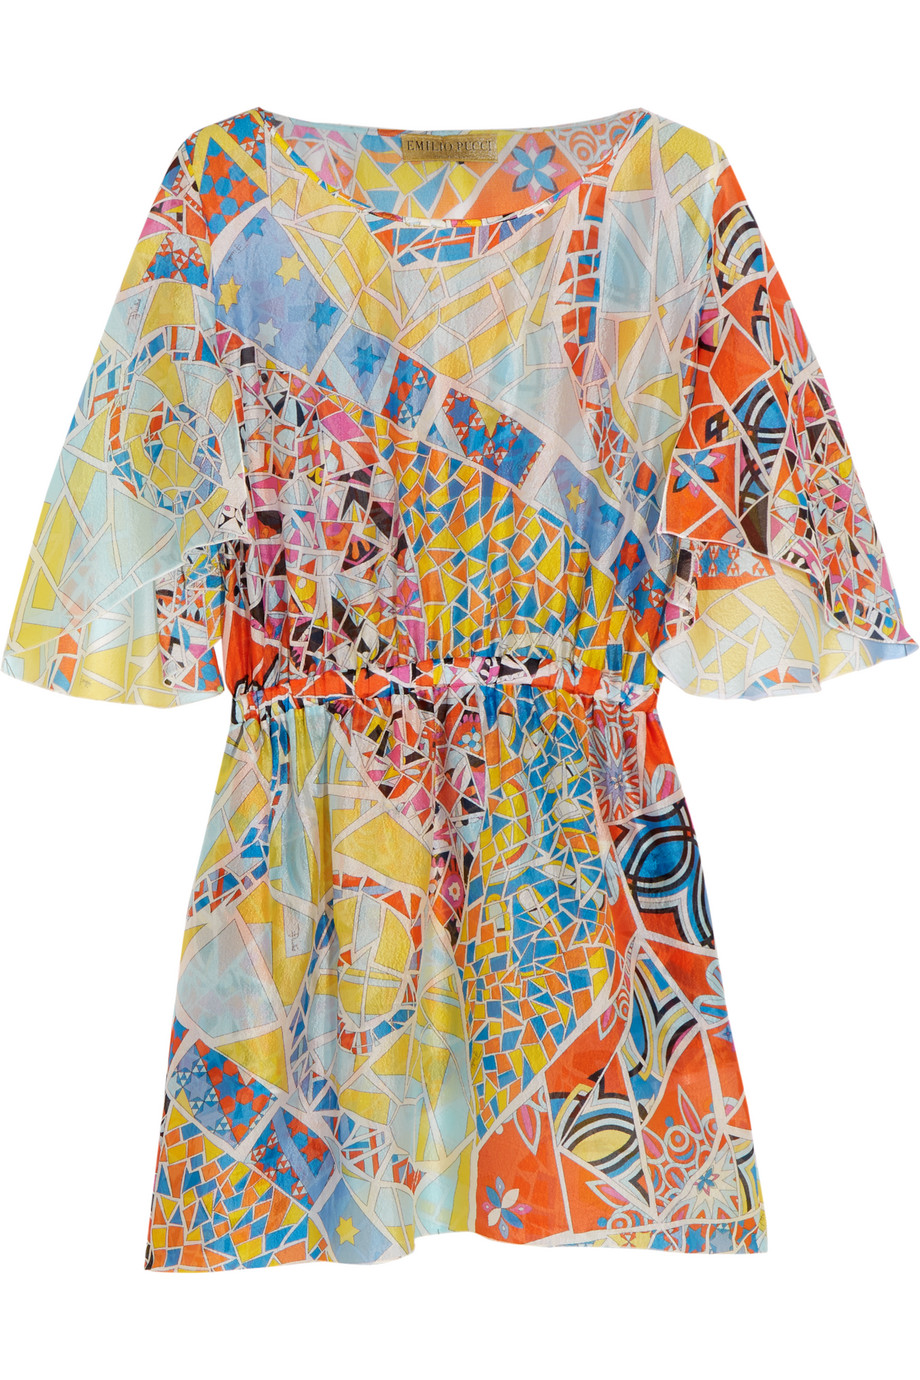 Emilio Pucci Printed Hammered-Silk Dress, Sky Blue/Red, Women's - Printed, Size: 40